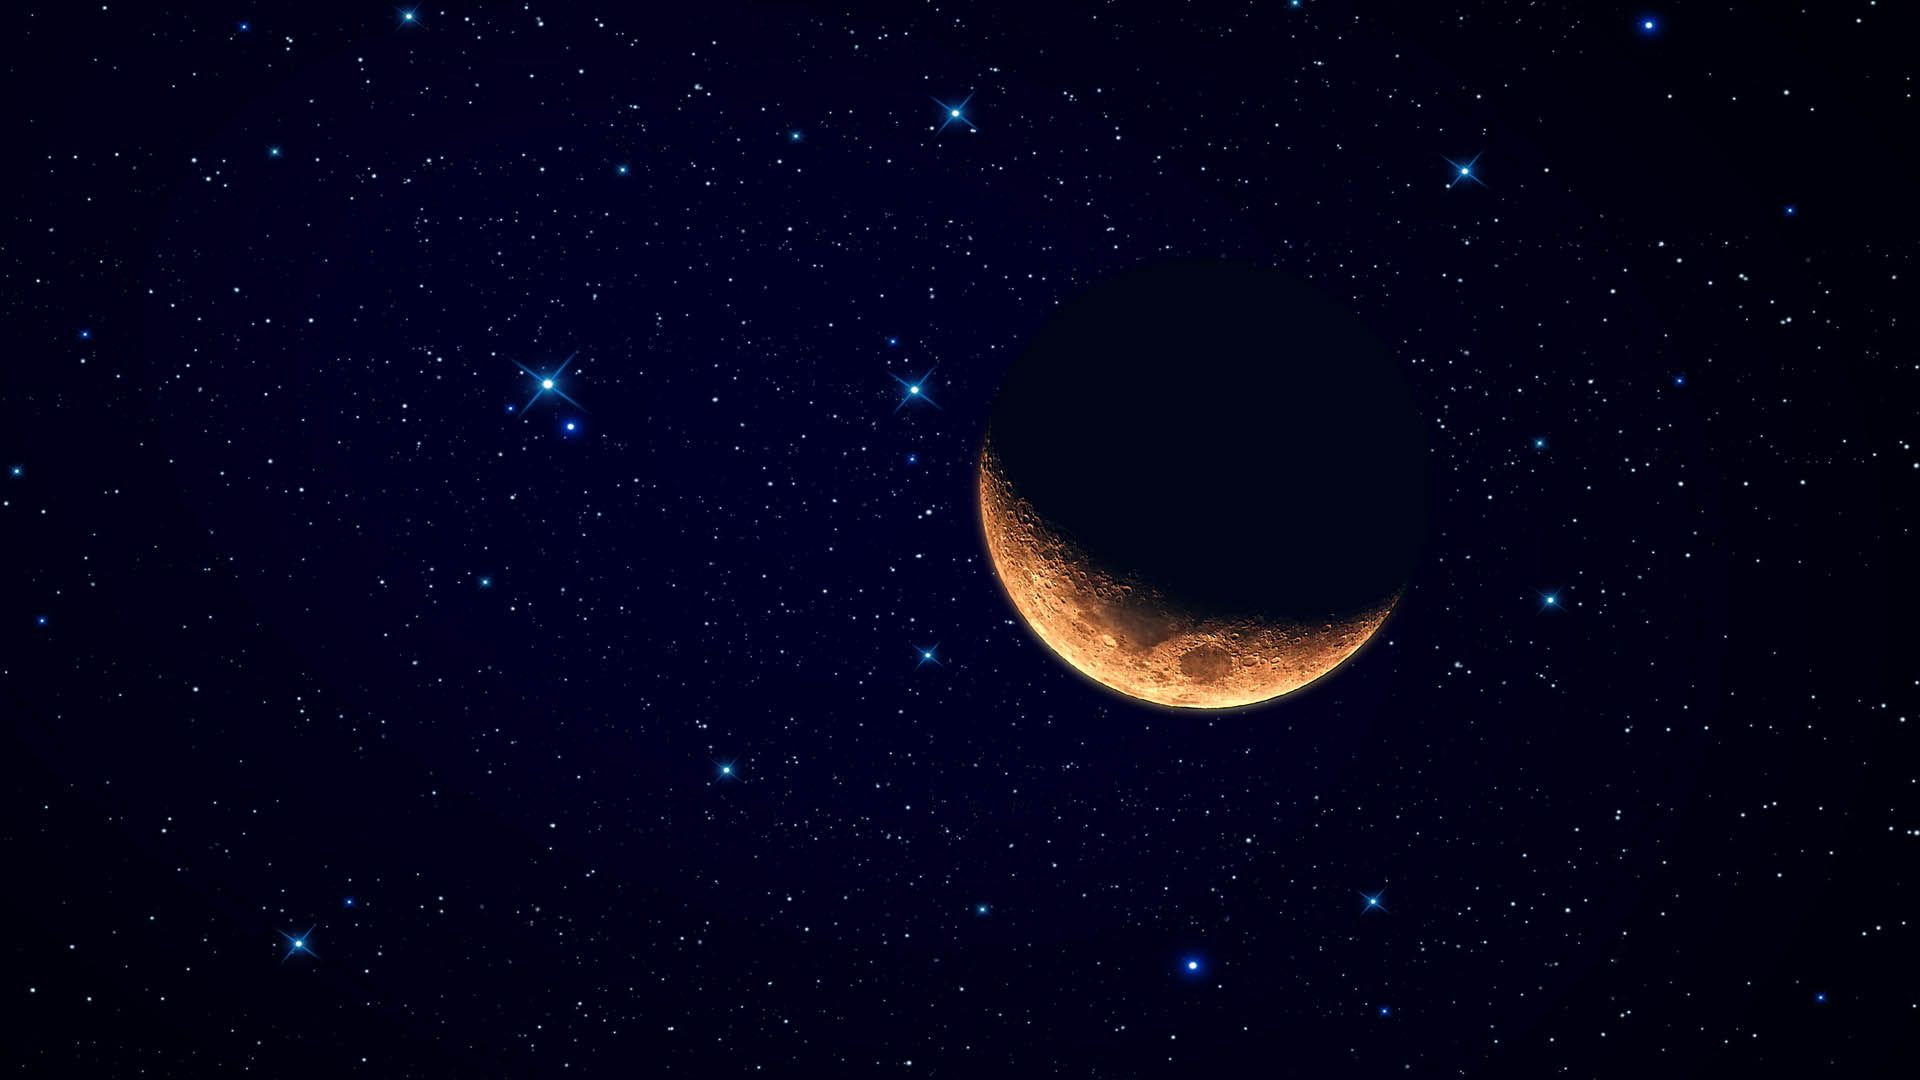 Crescent Moon High Quality Wallpaper With High Resolution 1920x1080